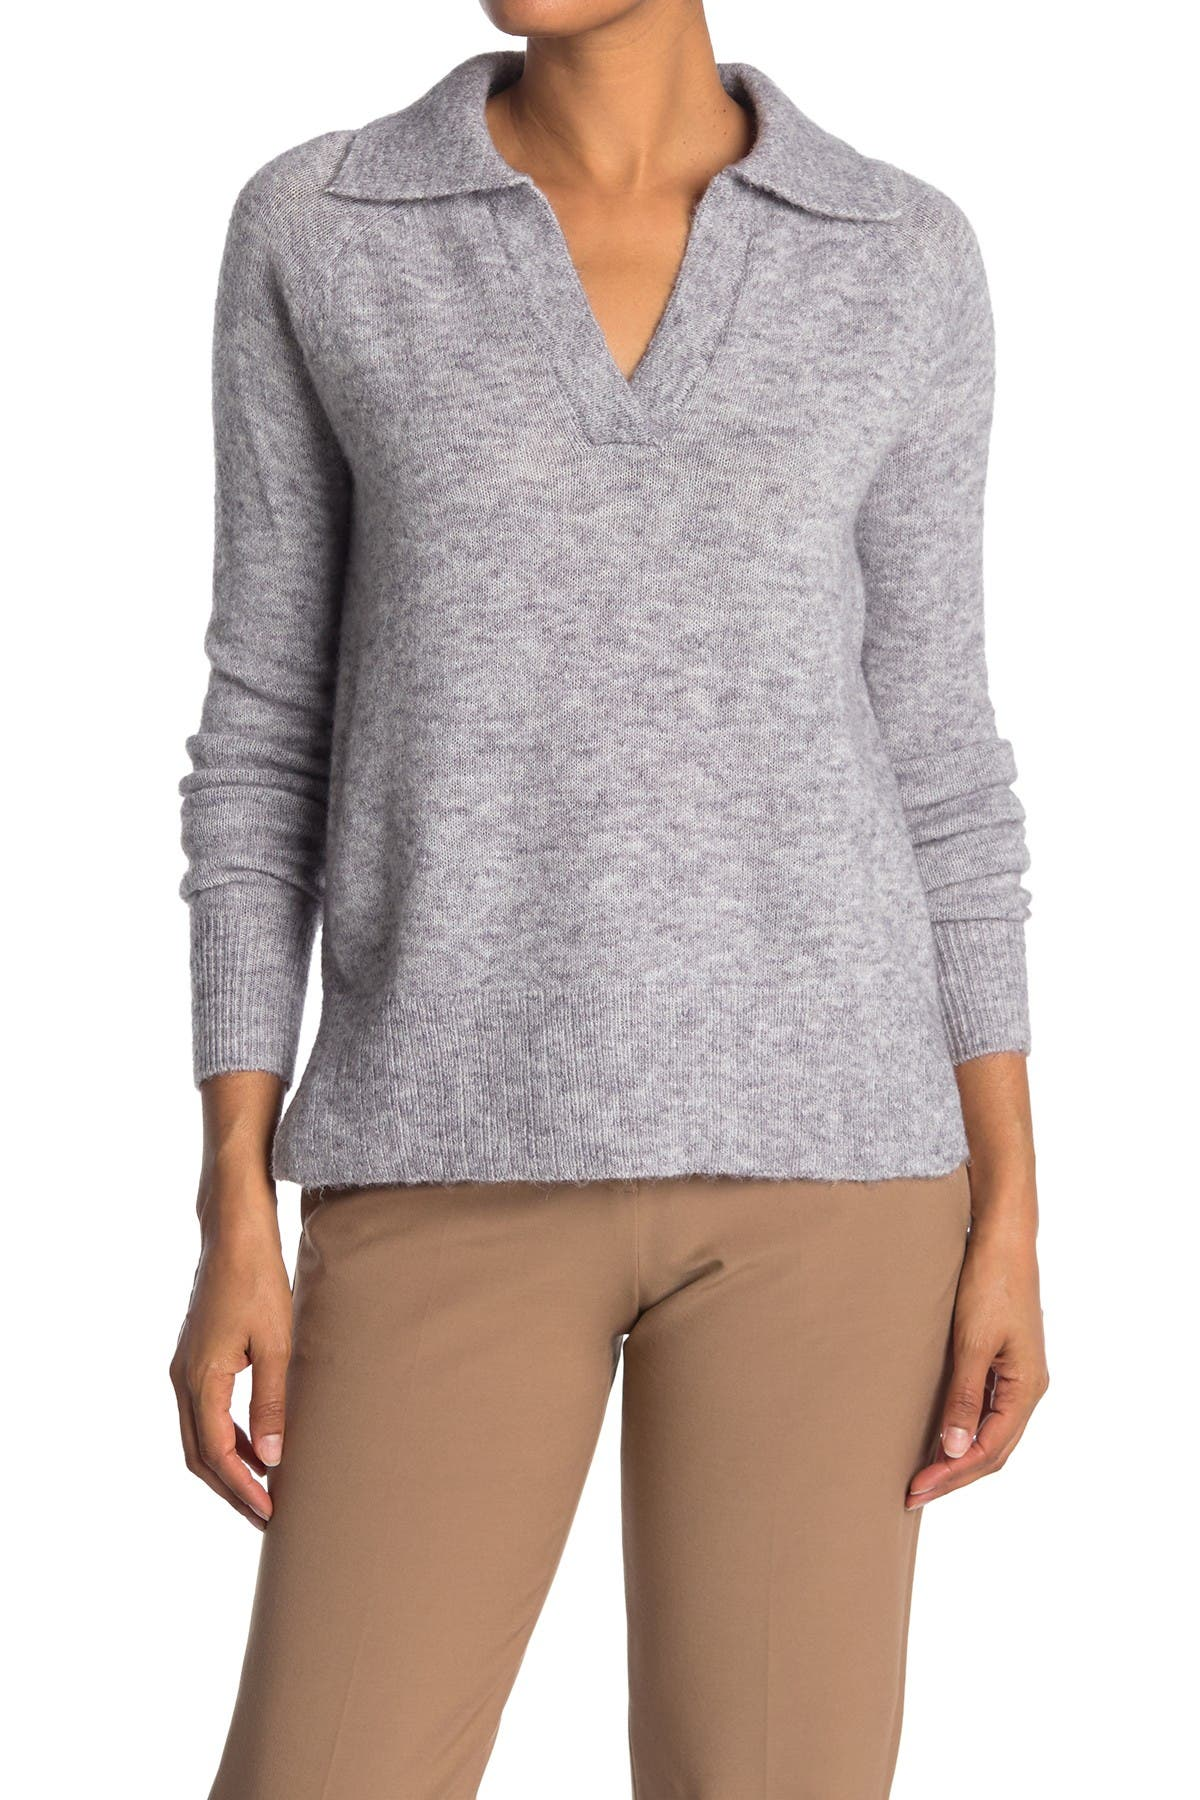 Image of Cloth By Design Johnny Collared Cozy Pullover Sweater